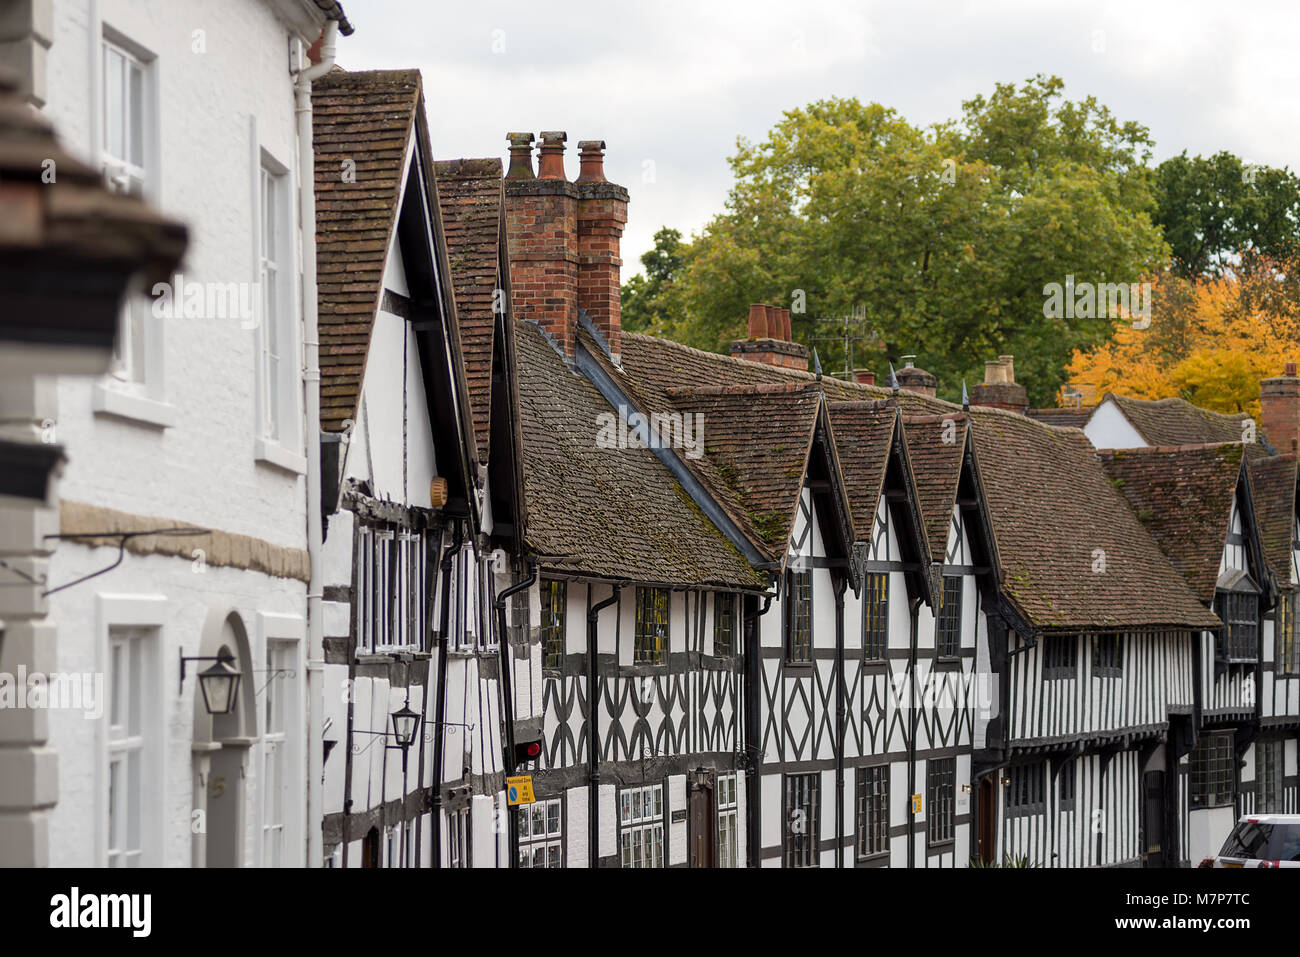 A view along the curved street of Mill Street, Warwick of 16th / 17th century era Tudor style houses with tiled - Stock Image